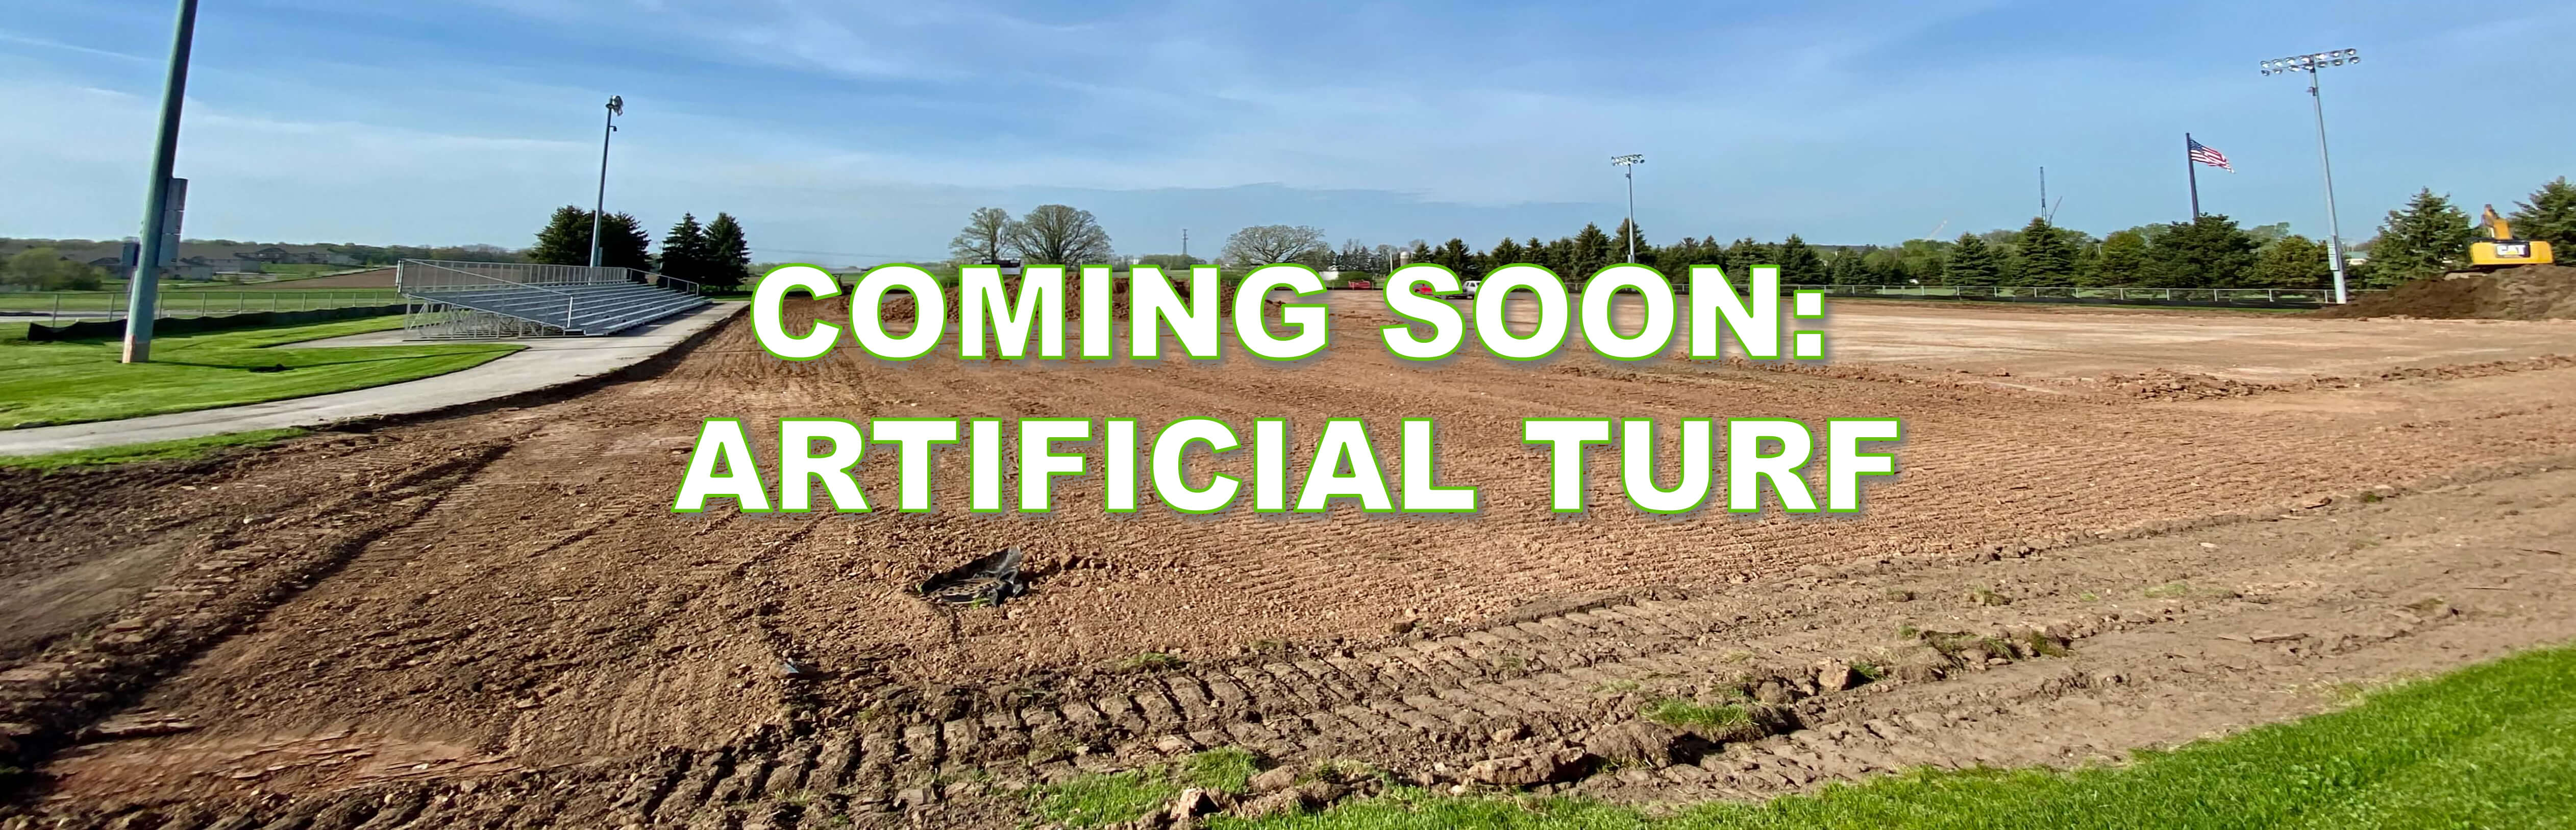 Artificial Turf Coming to Horace Mann